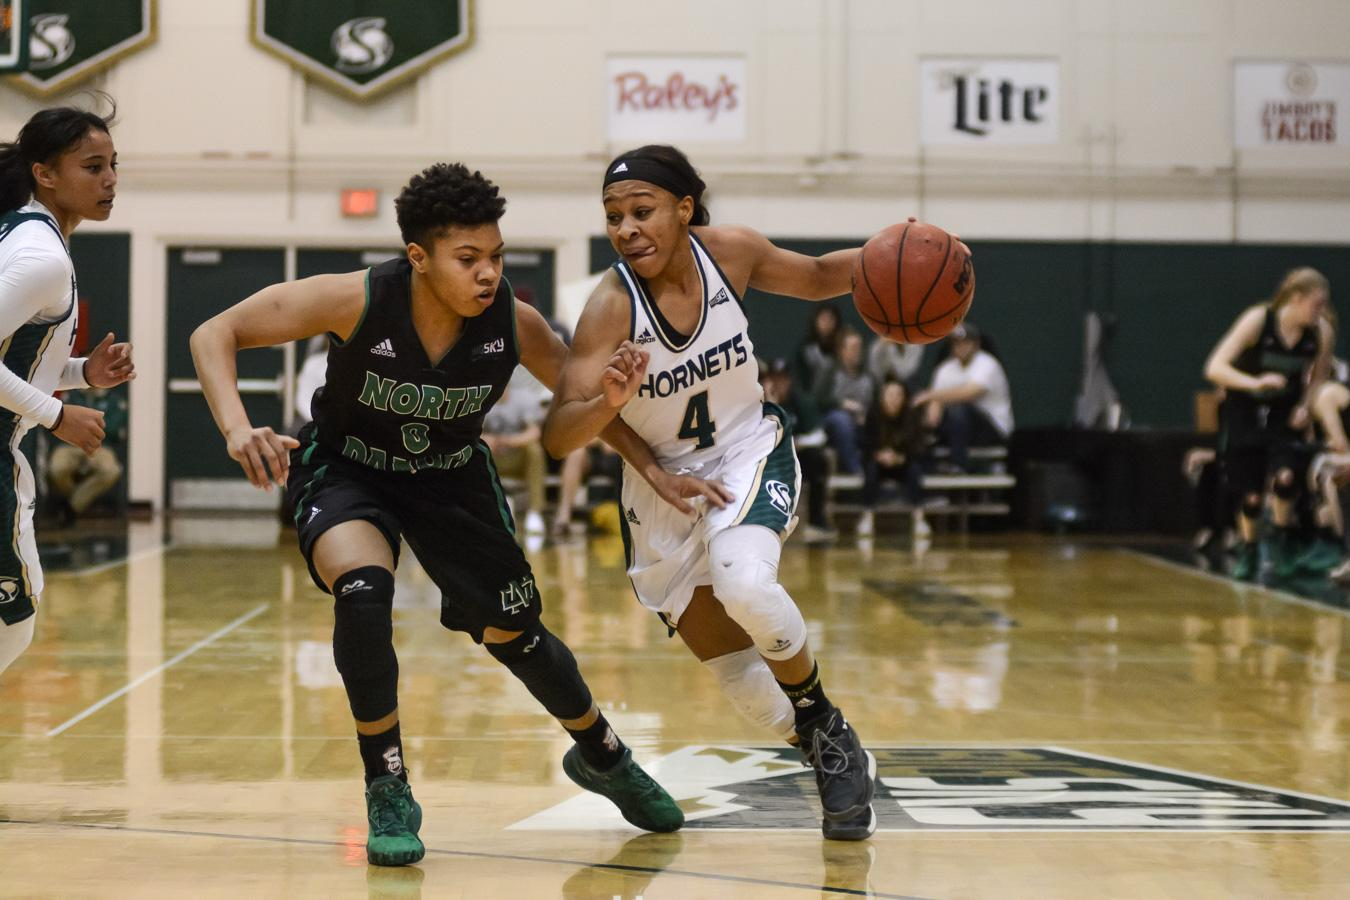 Senior women's basketball guard handles leadership for Hornets